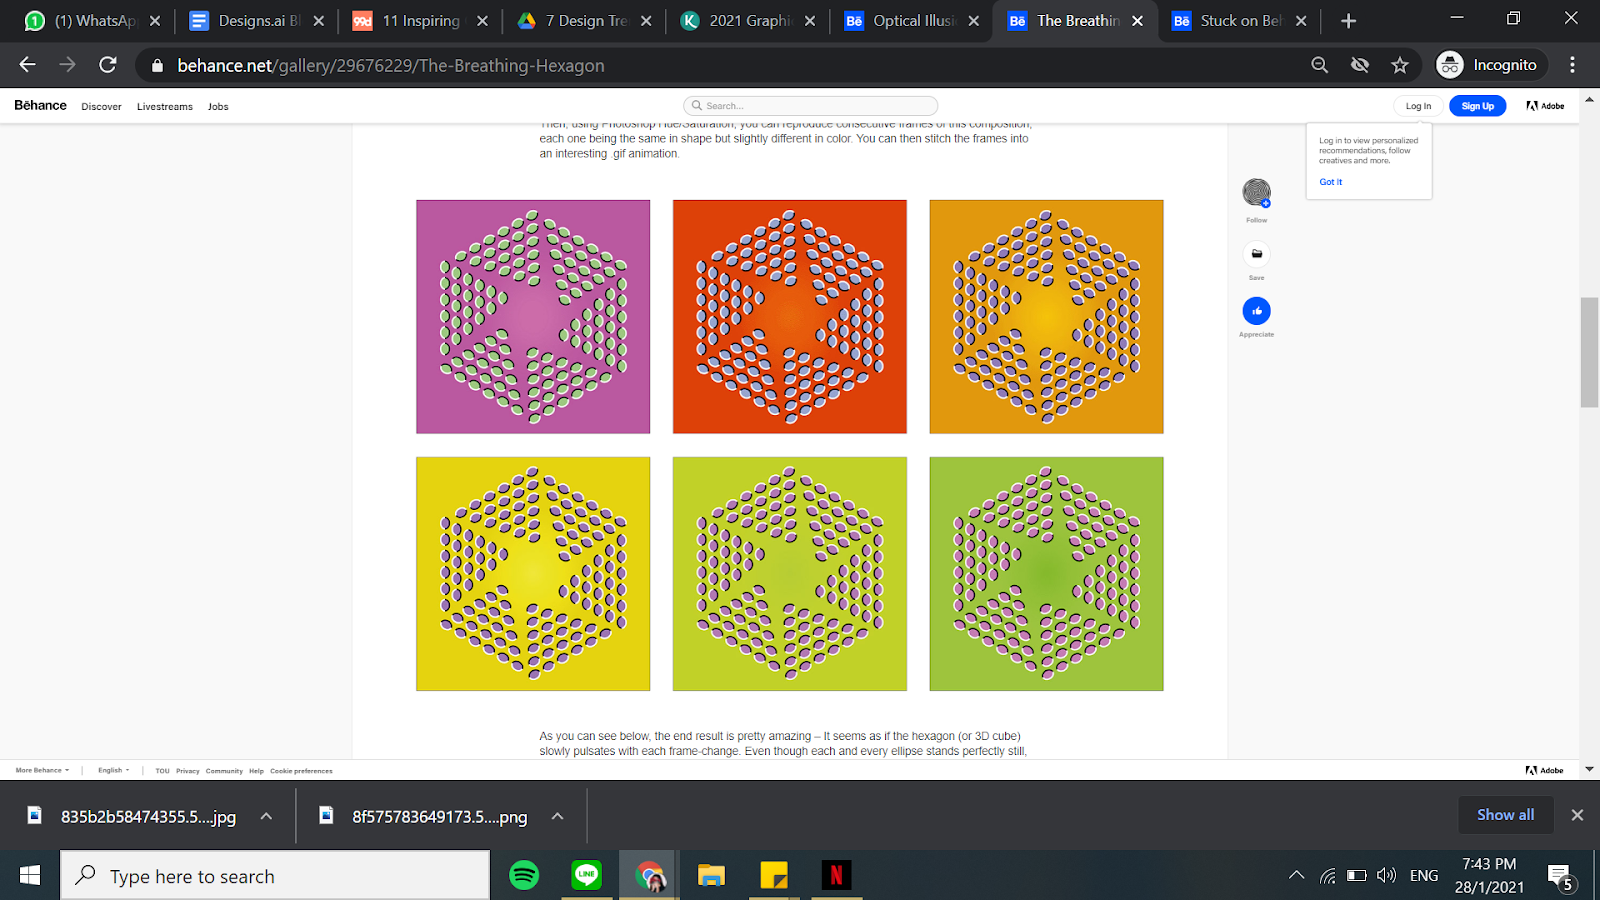 The Breathing Hexagon designs using optical illusion.